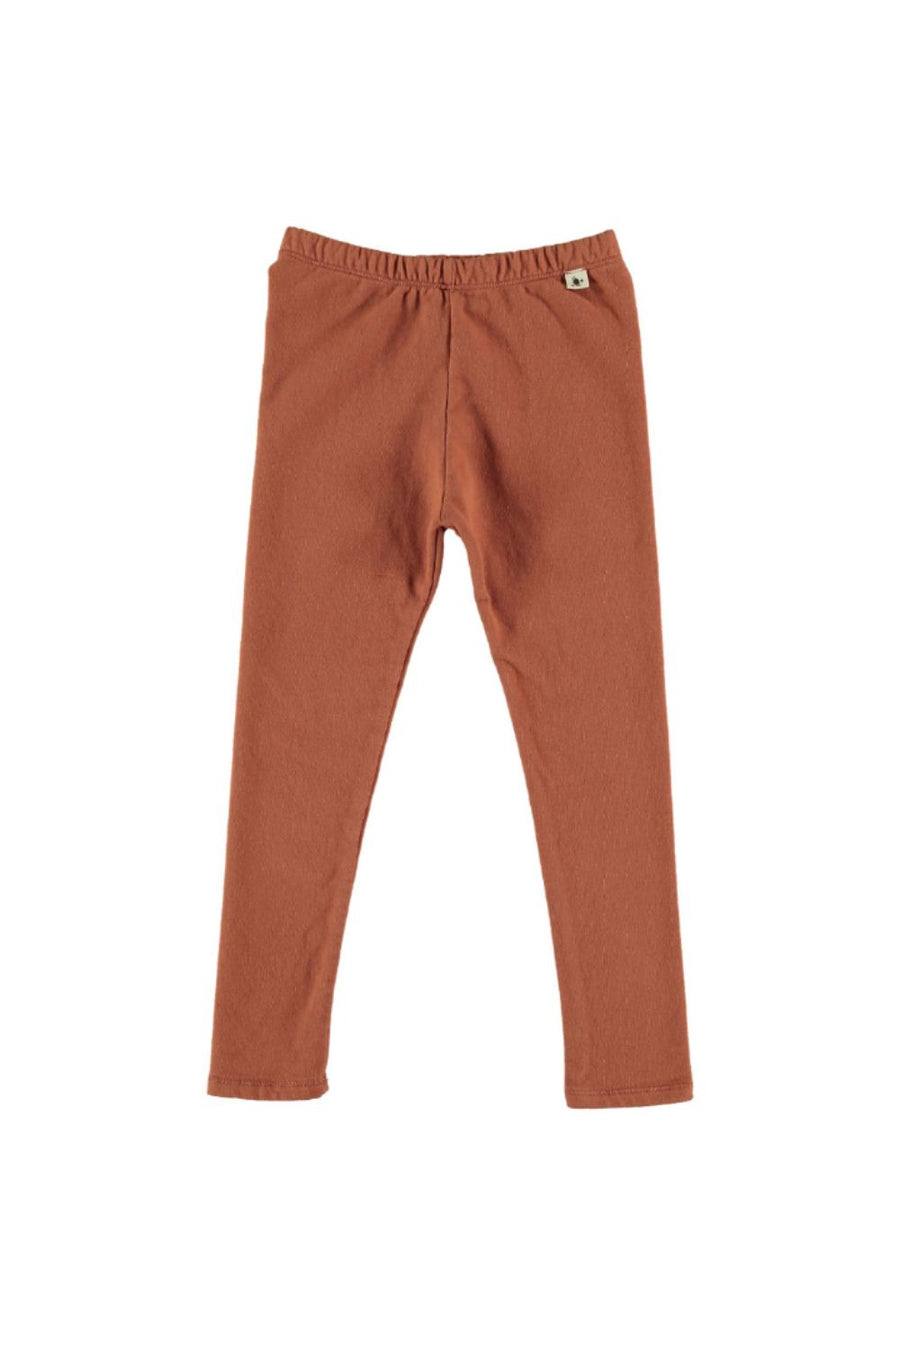 ORGANIC KIDS LEGGING FLEECE